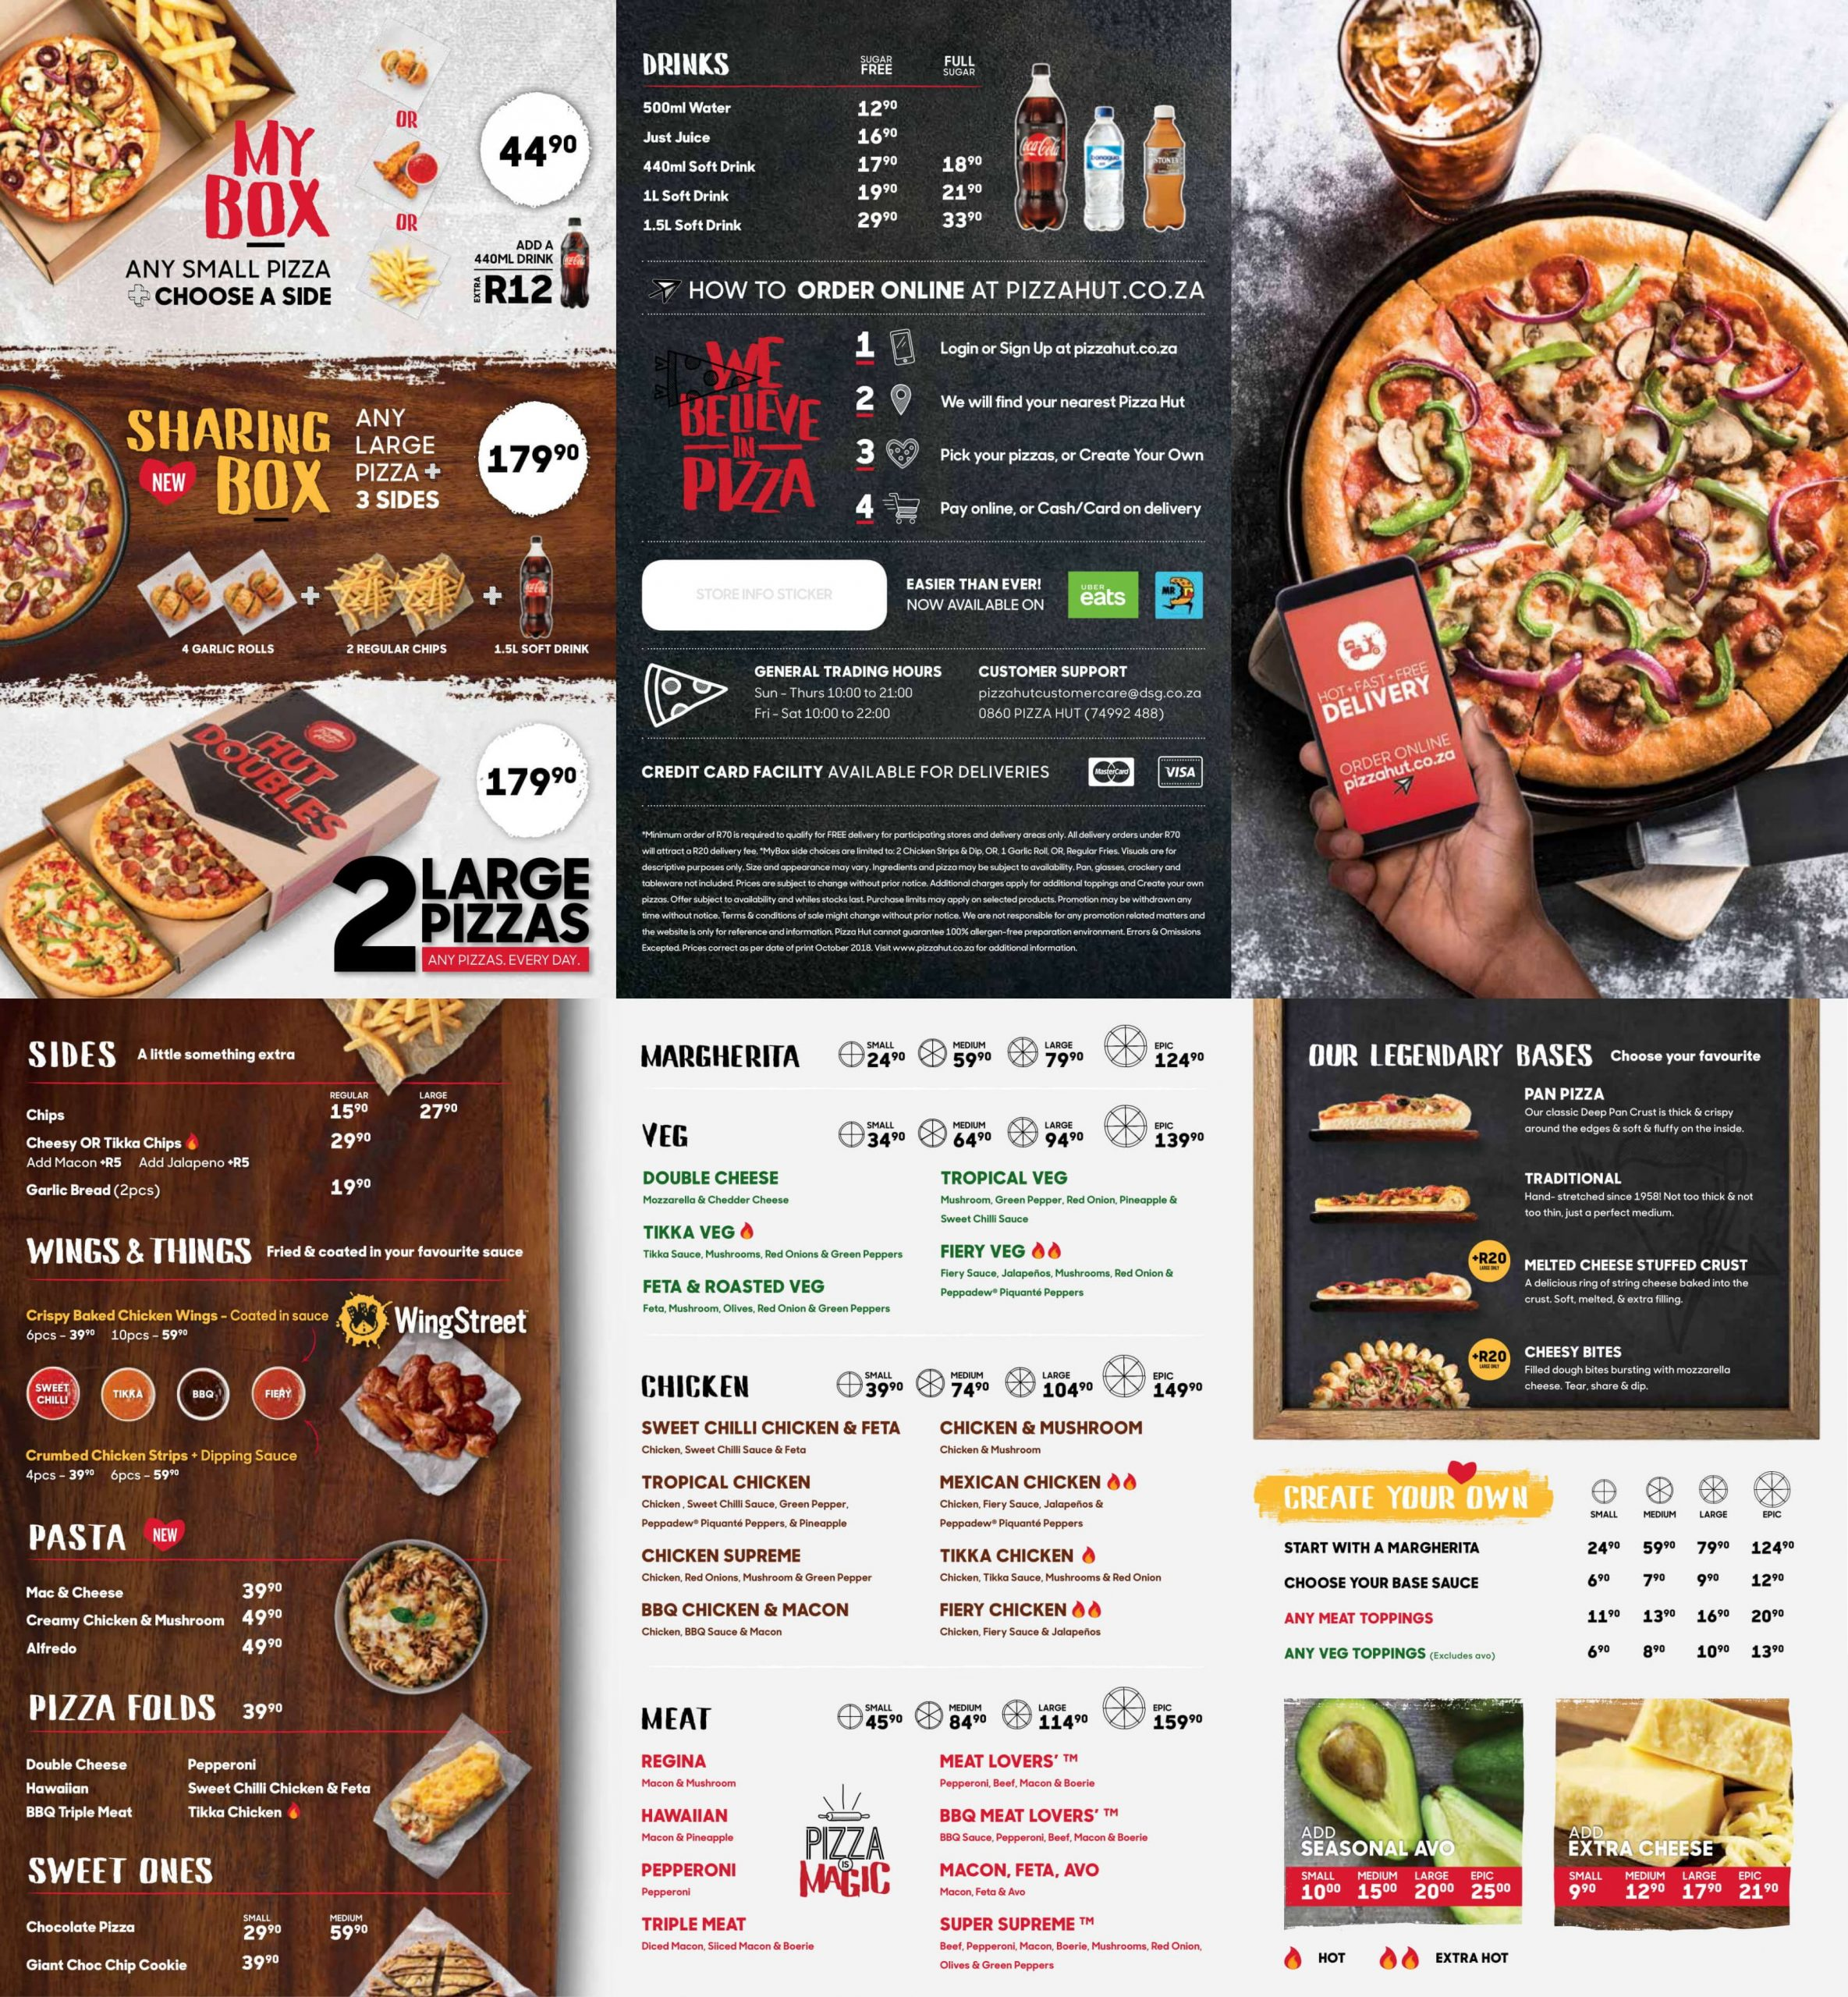 Die 12 Besten Pizzas in Durban - Pizza Recipes South Africa Pdf